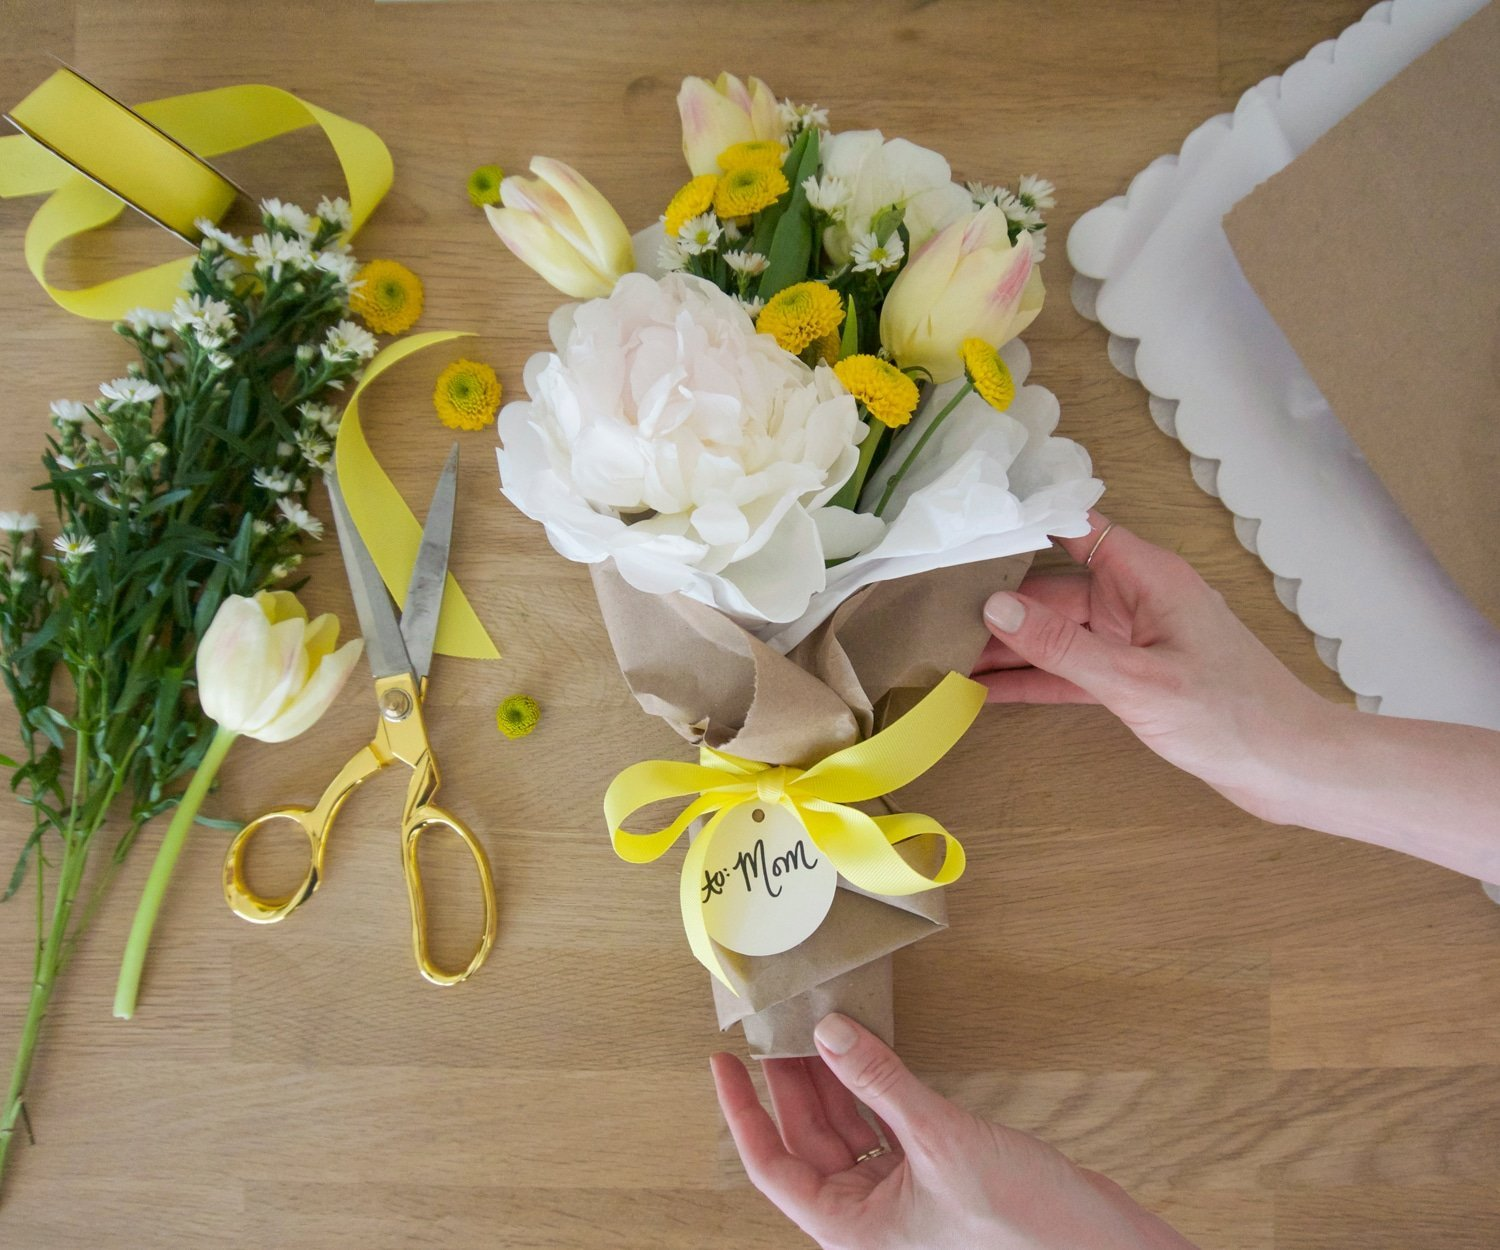 Blogger Ashley Brooke shares how to design a DIY bouquet in 10 steps! | www.ashleybrookedesigns.com